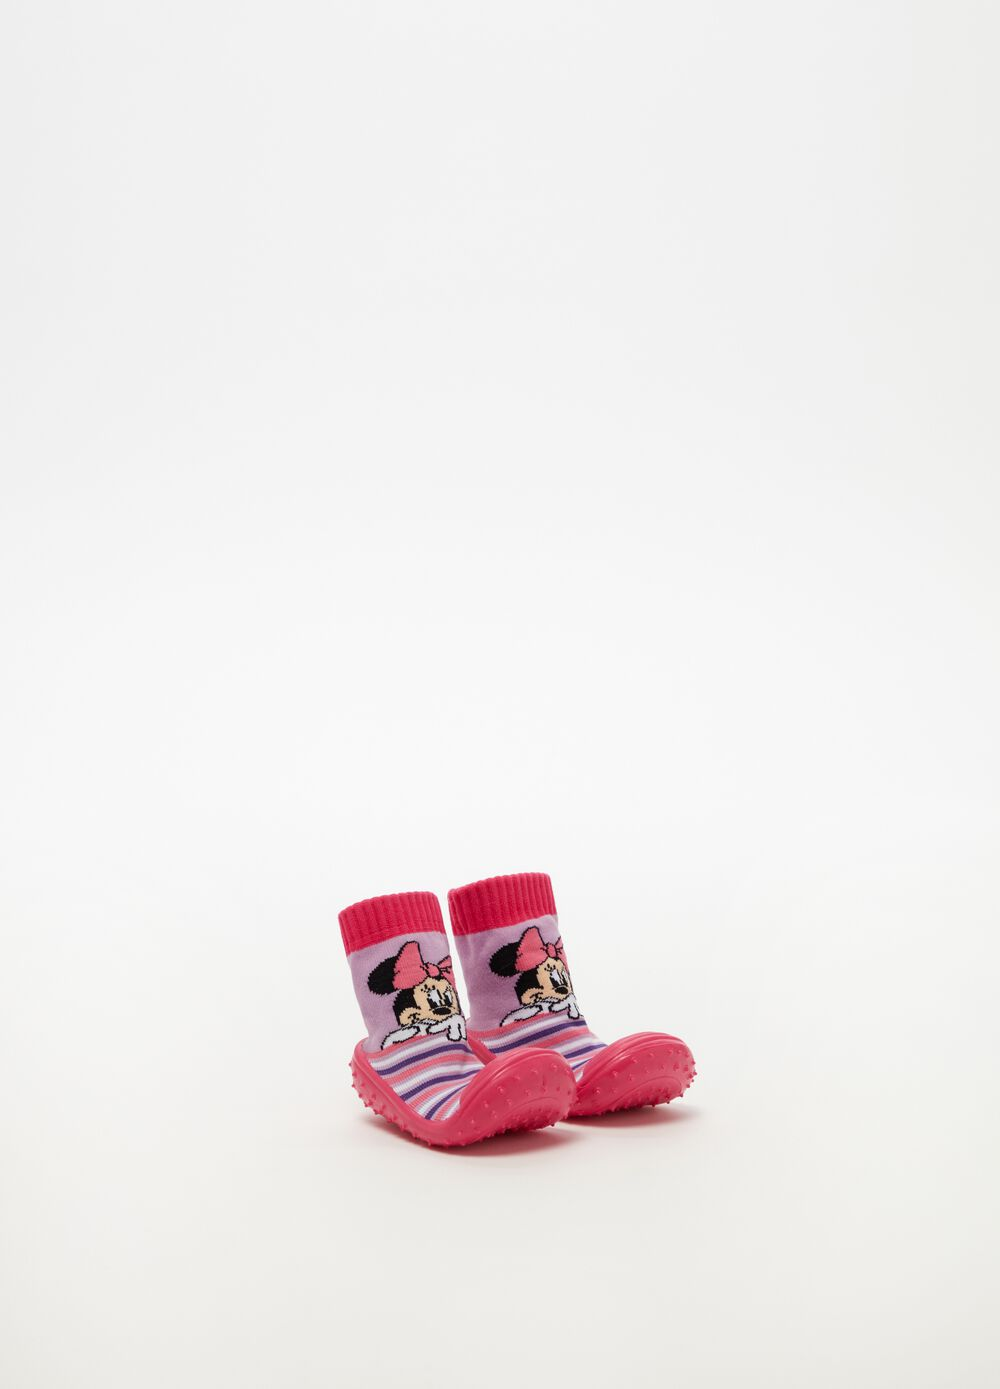 Shoes with Minnie Mouse and striped pattern